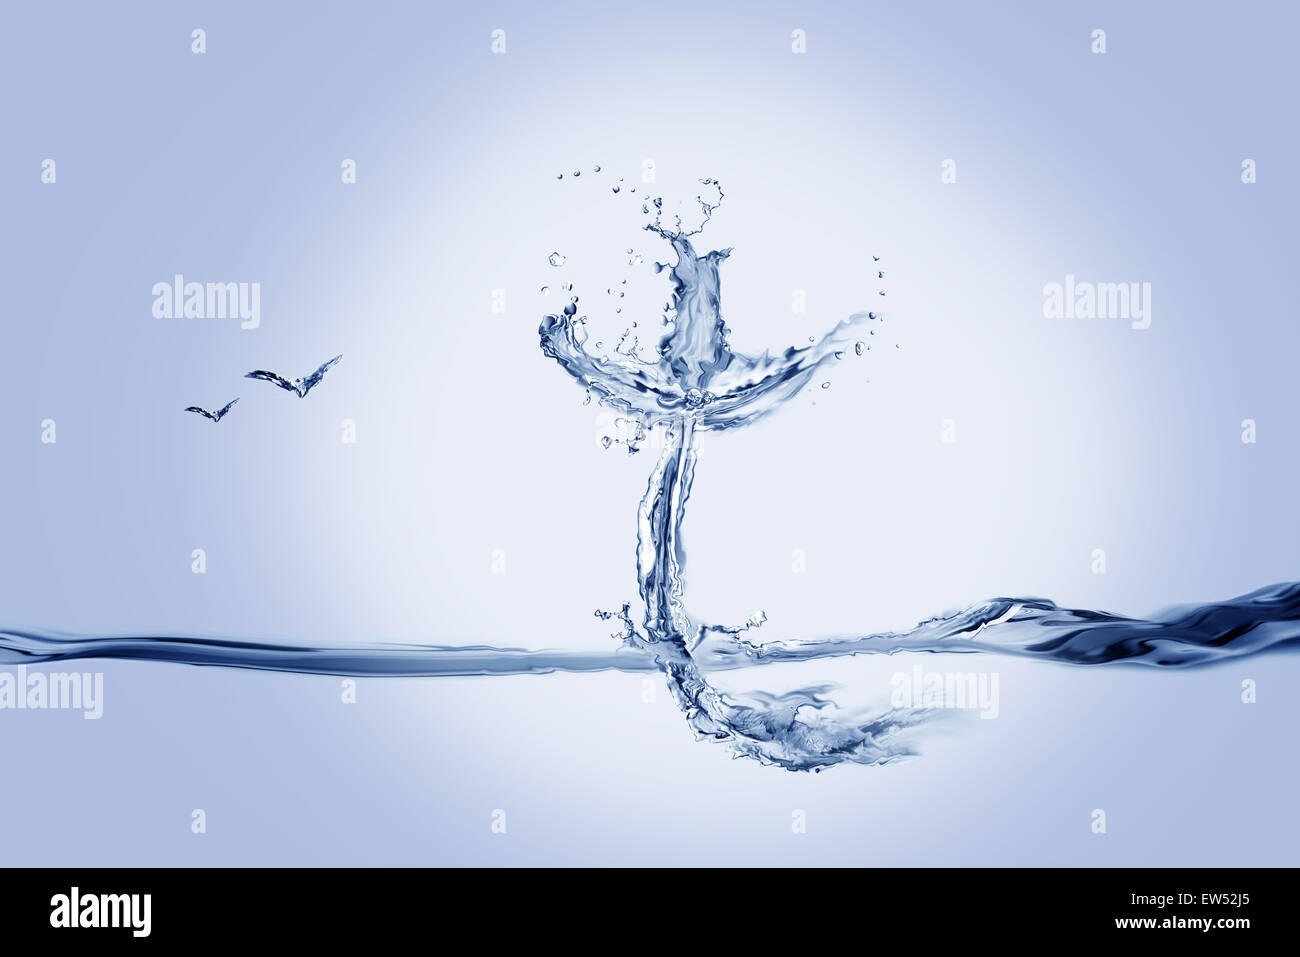 A cross made of water with flying birds. - Stock Image